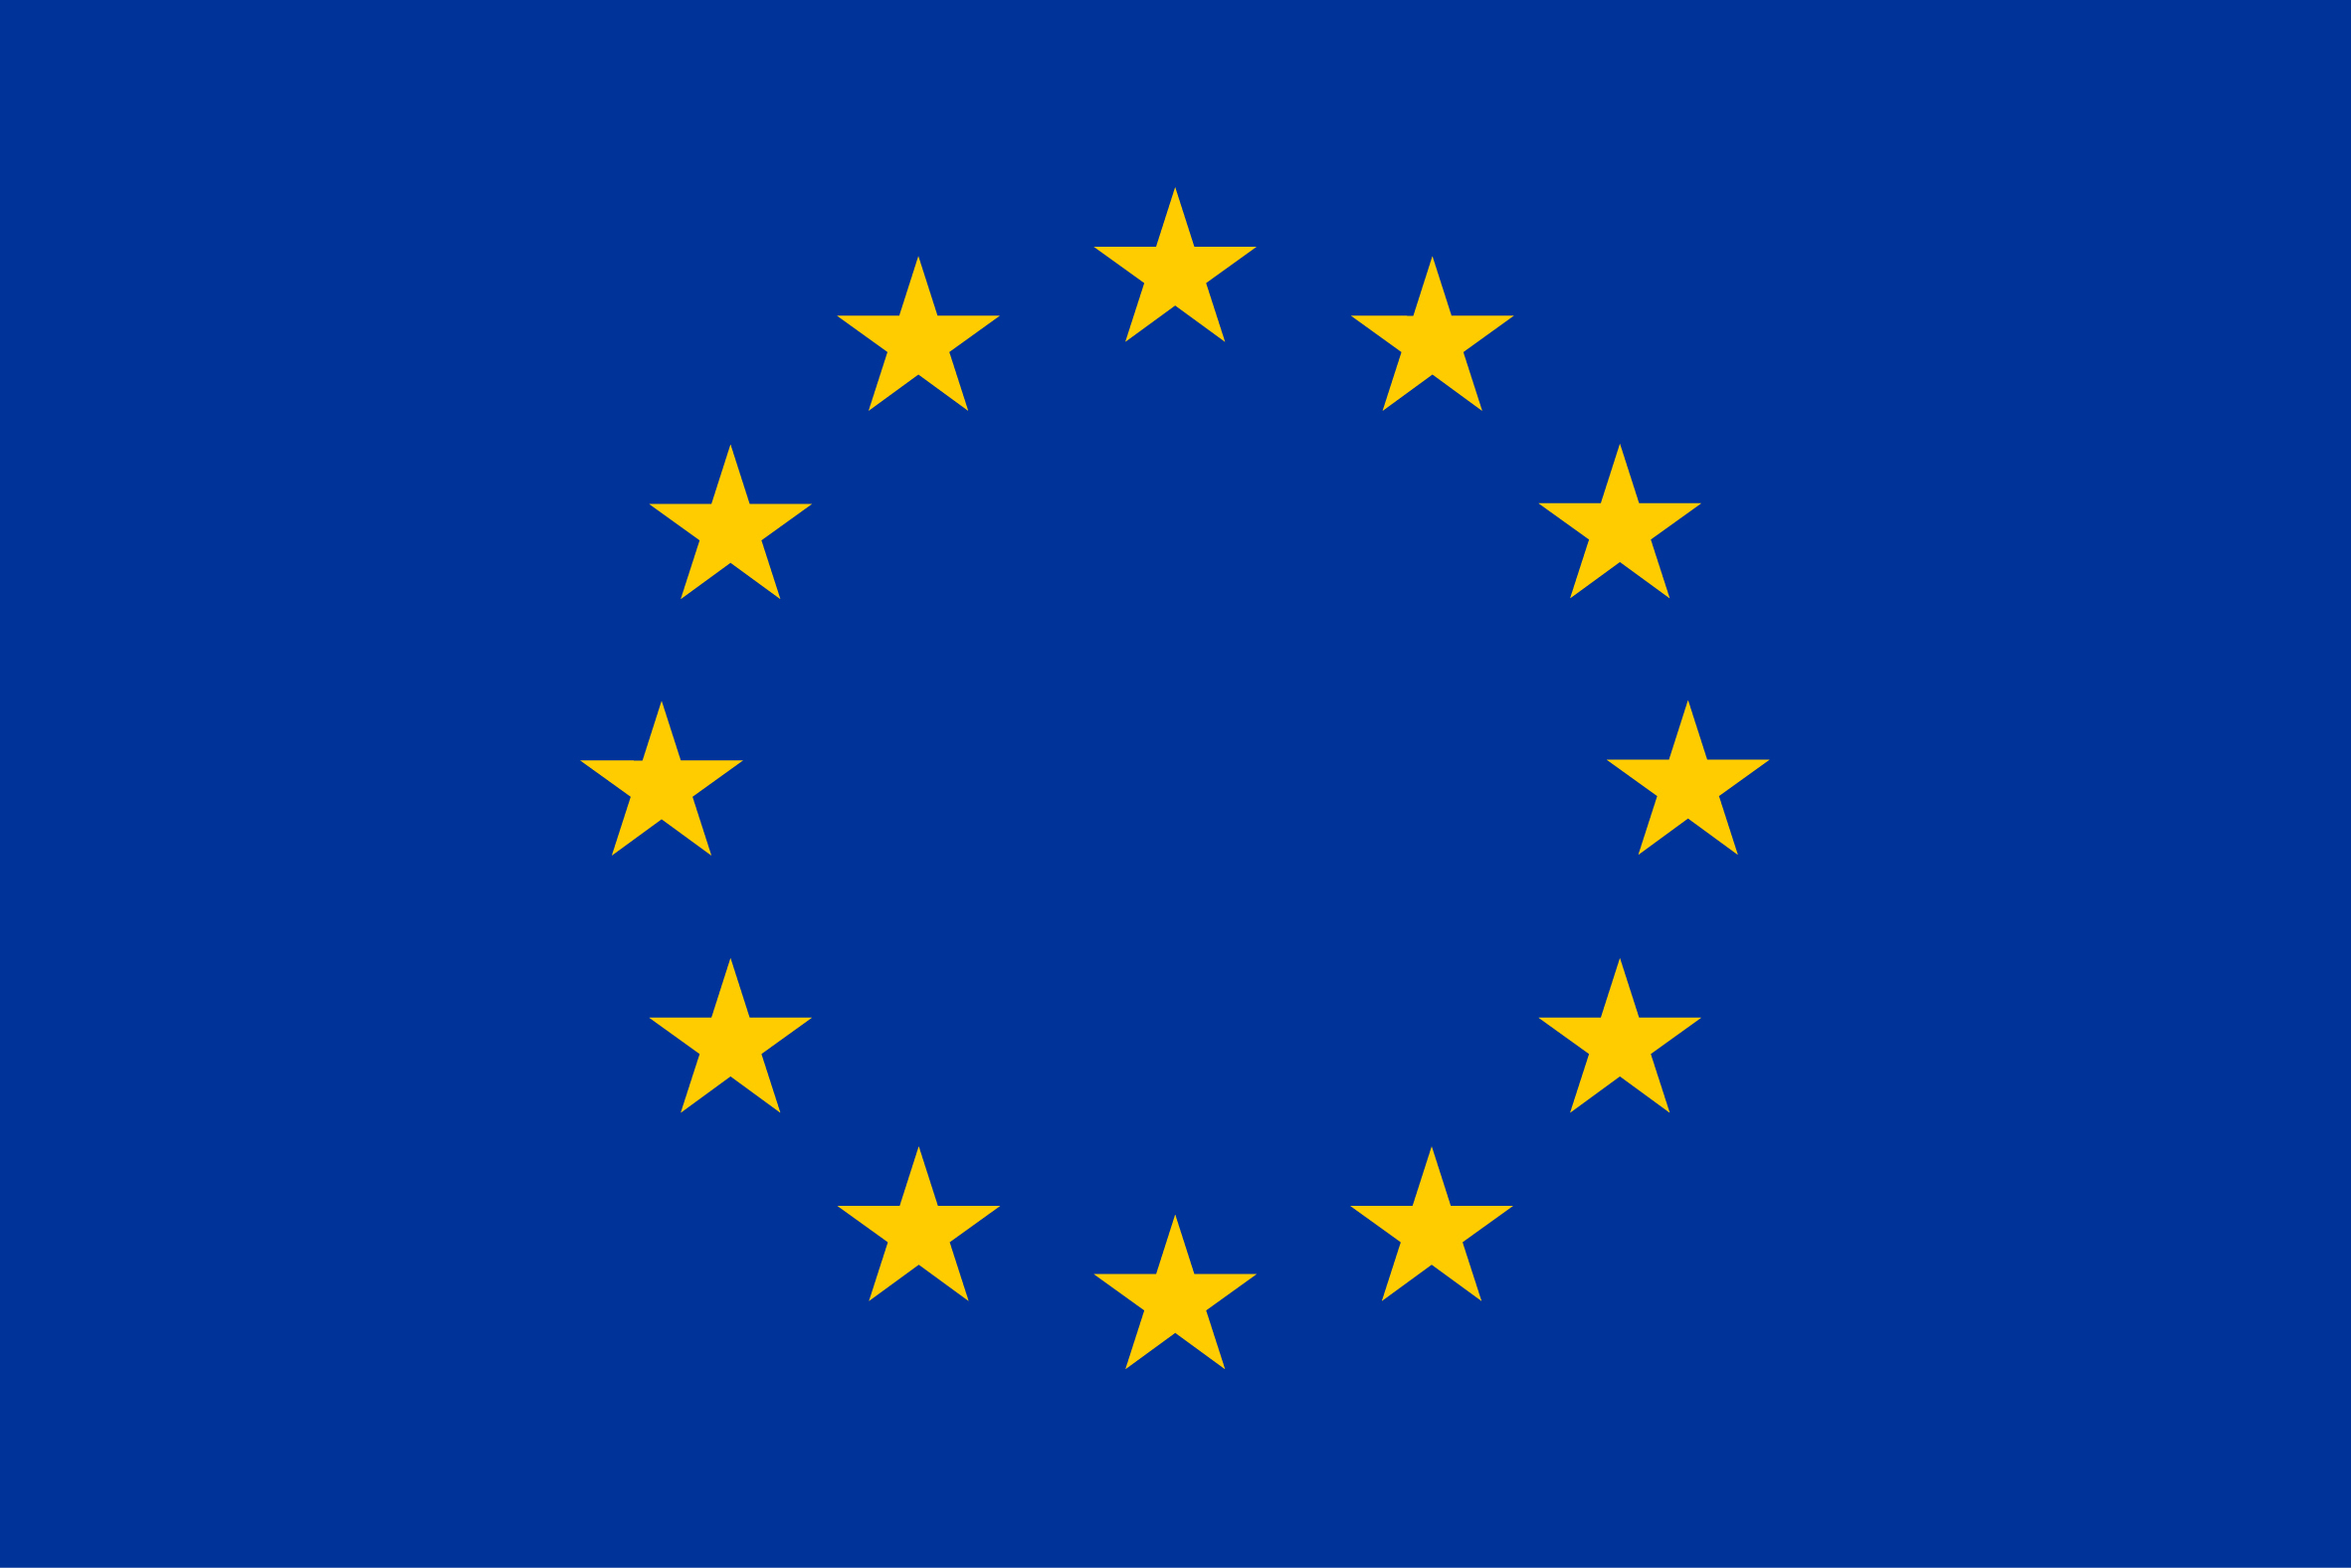 EU logo (the European flag, blue background with 12 golden stars)